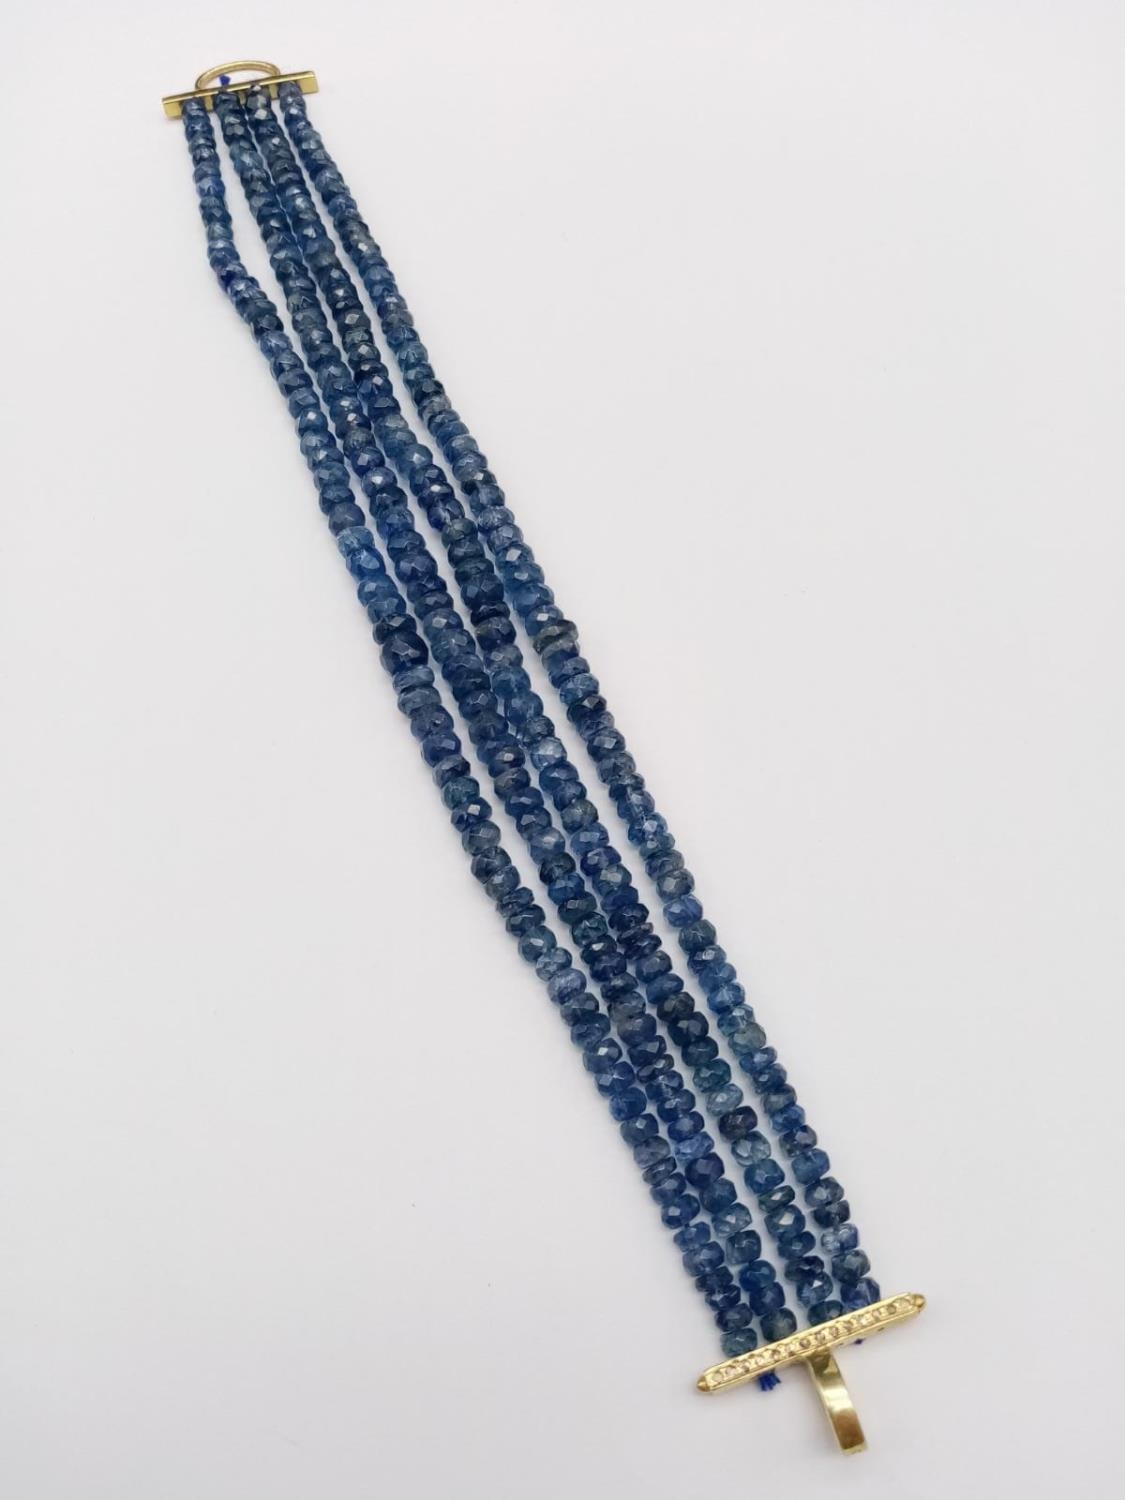 A 4 rows of Kyanite Gemstone Beads Bracelet with Gold Plated Diamond Clasp, 170cts of kyanites, 0. - Image 4 of 5